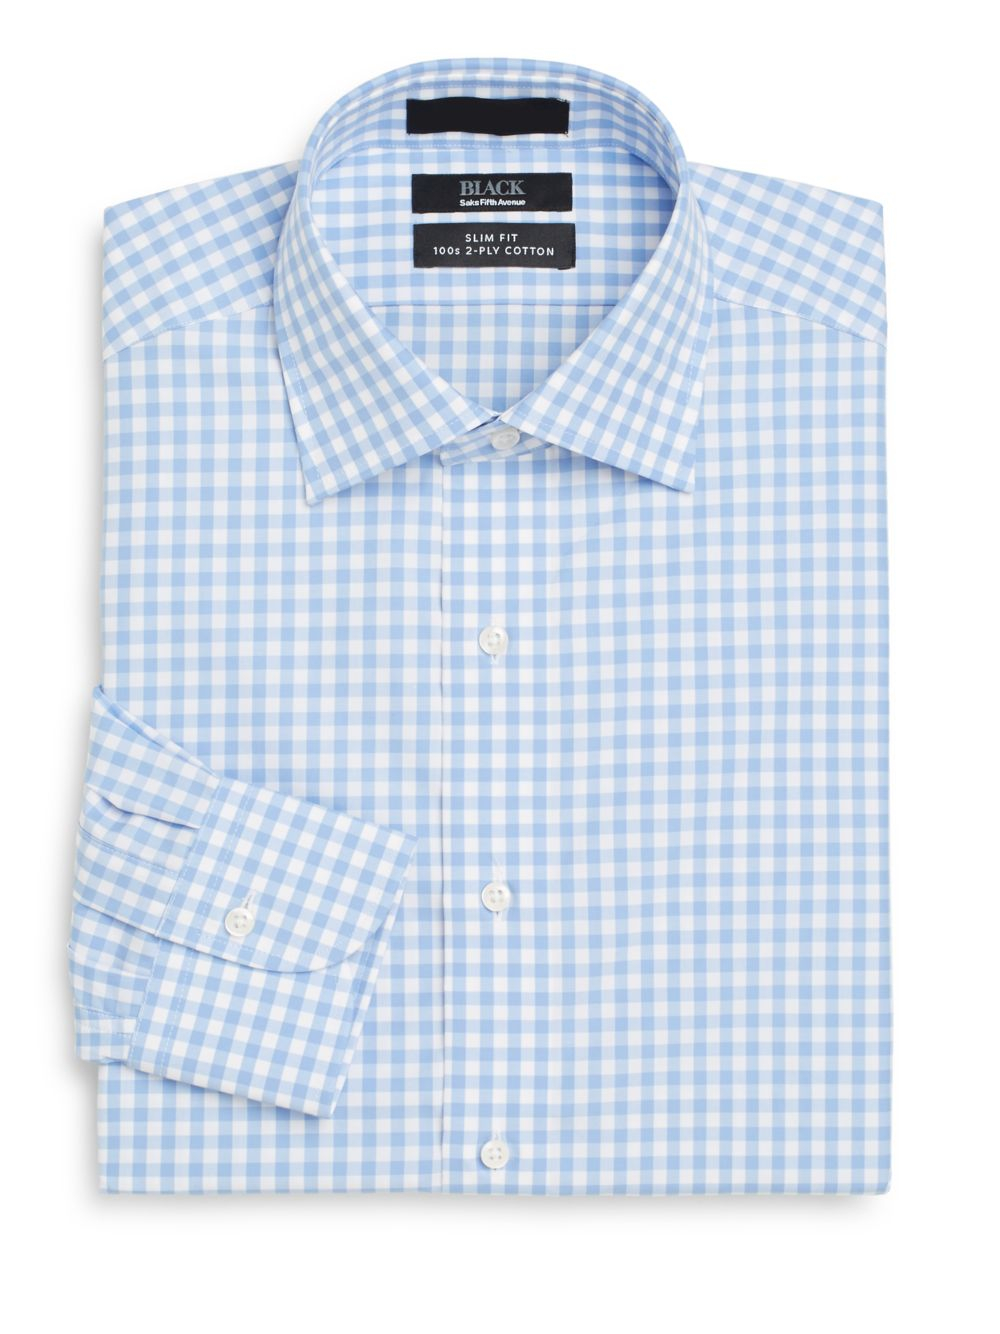 Saks fifth avenue black label slim fit gingham check two for 2 ply cotton dress shirt